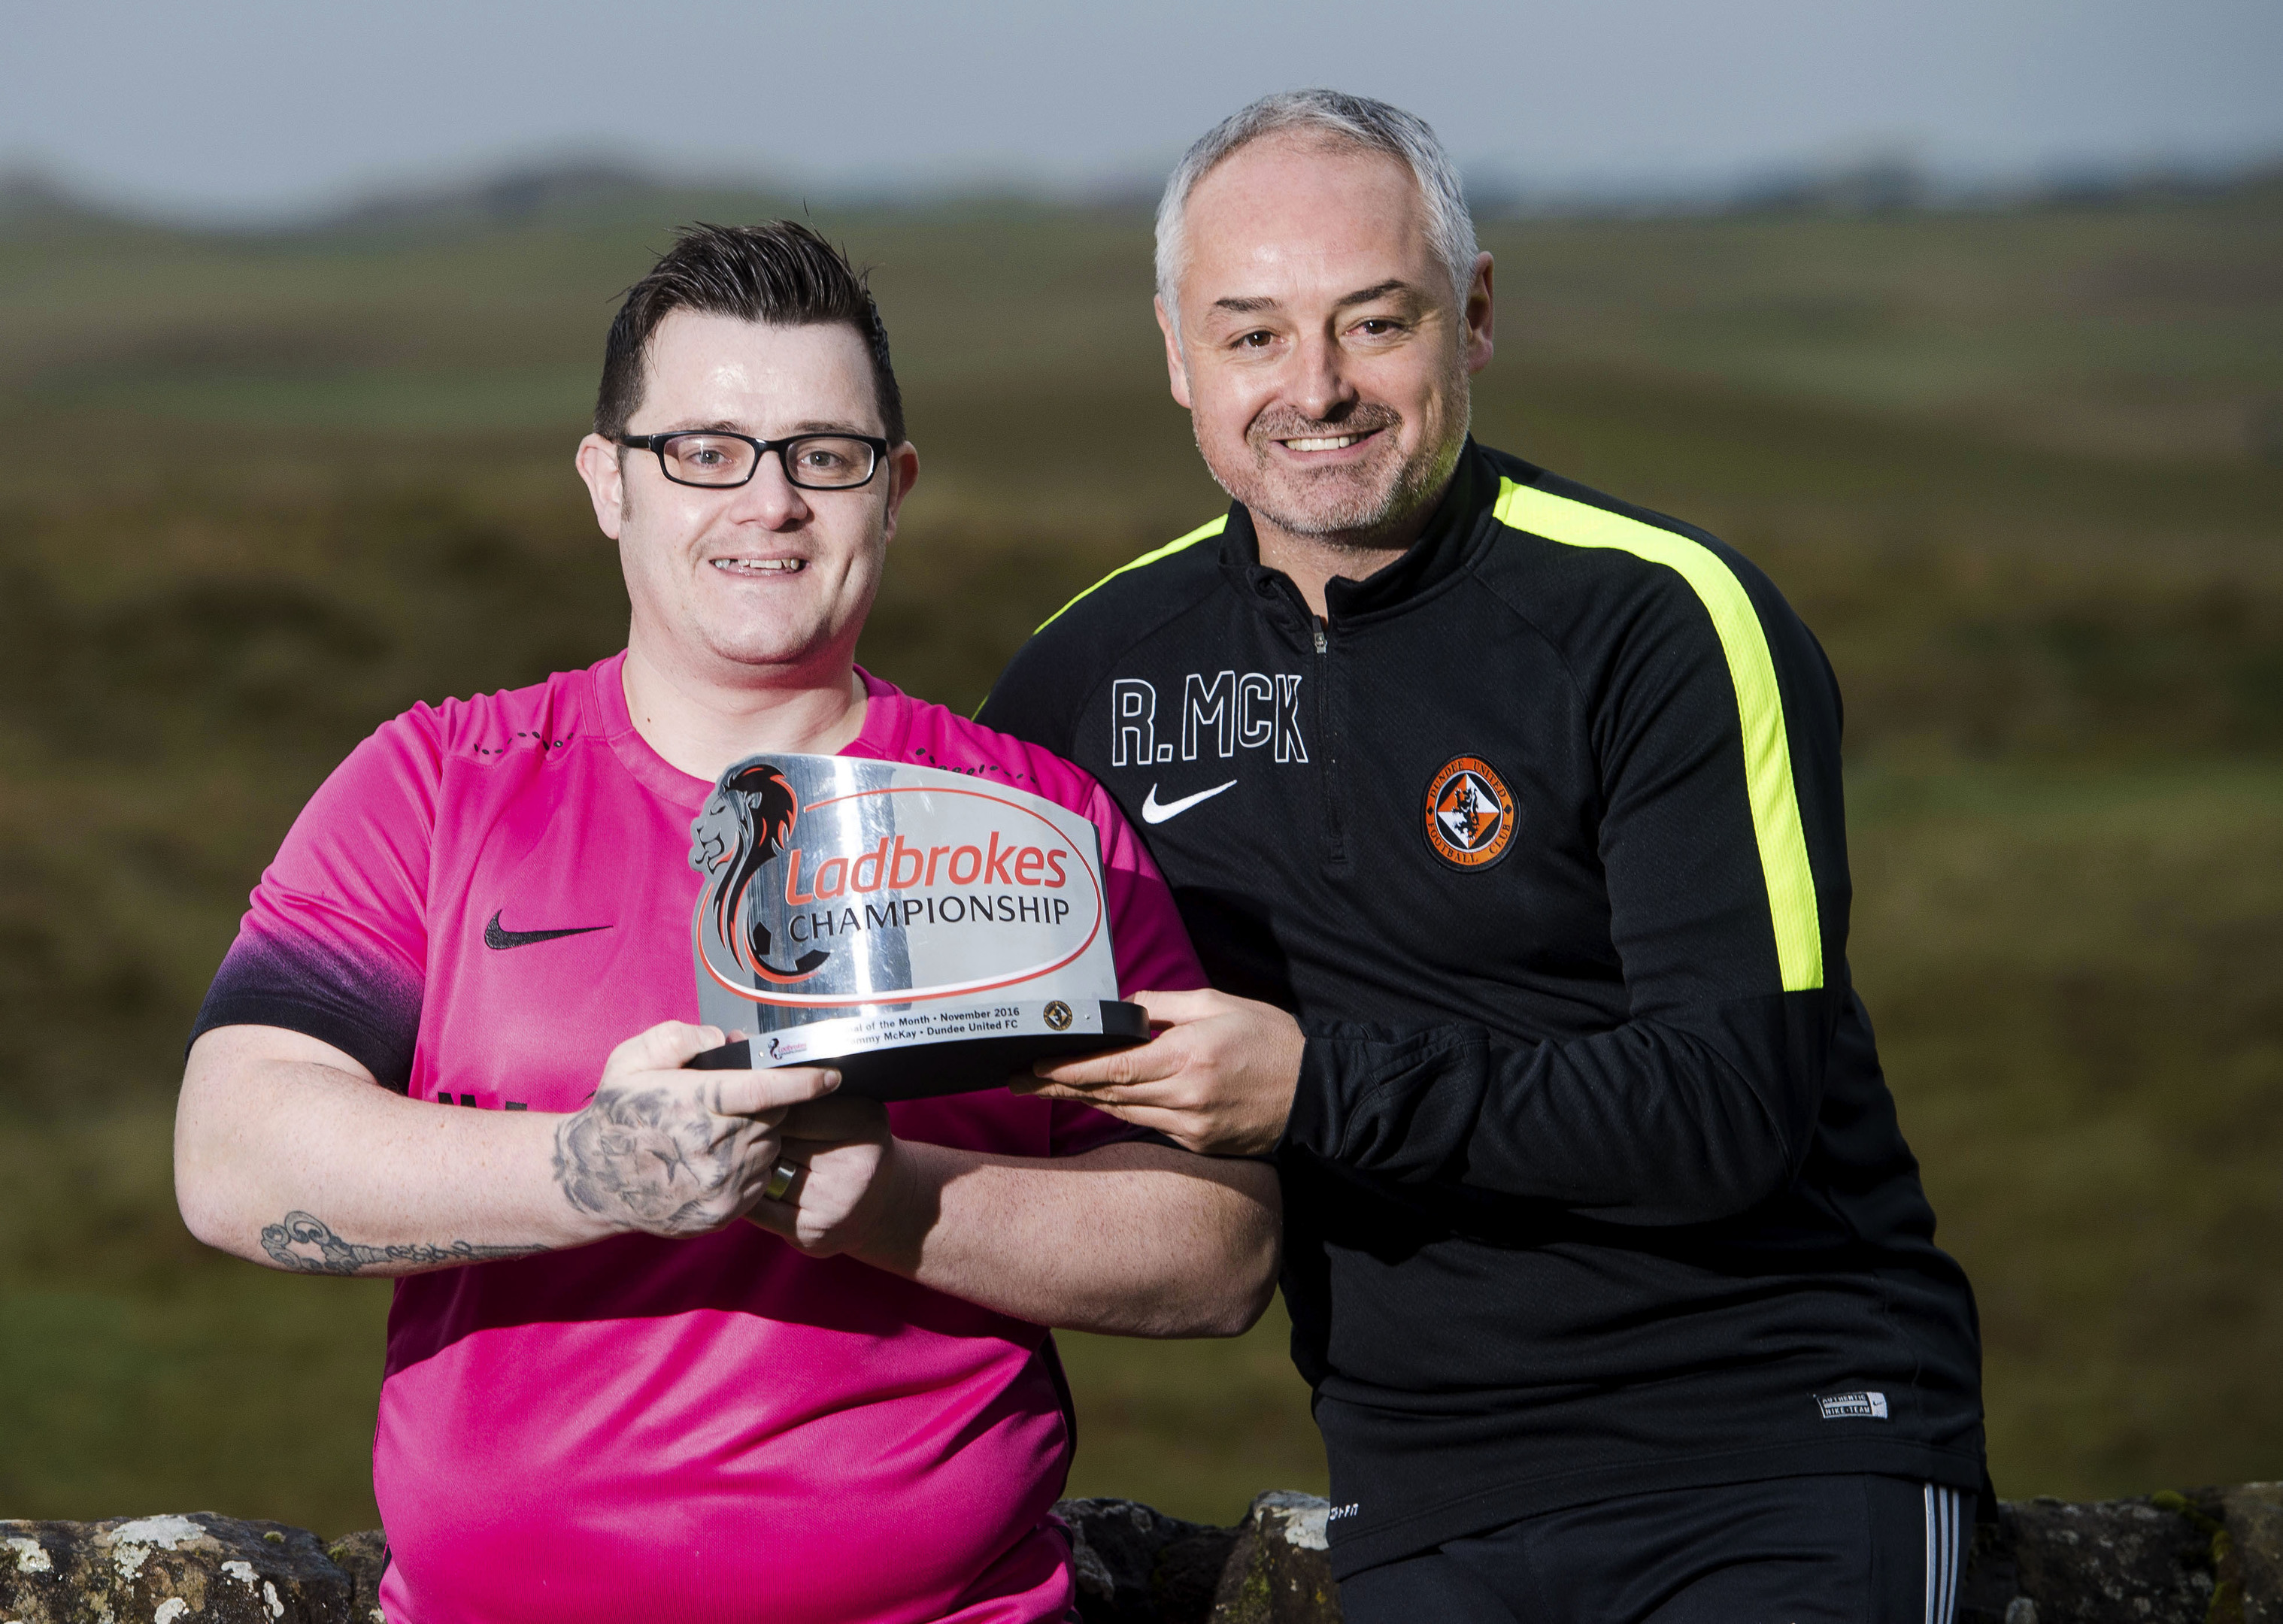 Dundee United supporter Tommy McKay is pictured with Dundee United manager Ray MacKinnon (right) after the fan is awarded the Ladbrokes Championship Goal of the Month award for November